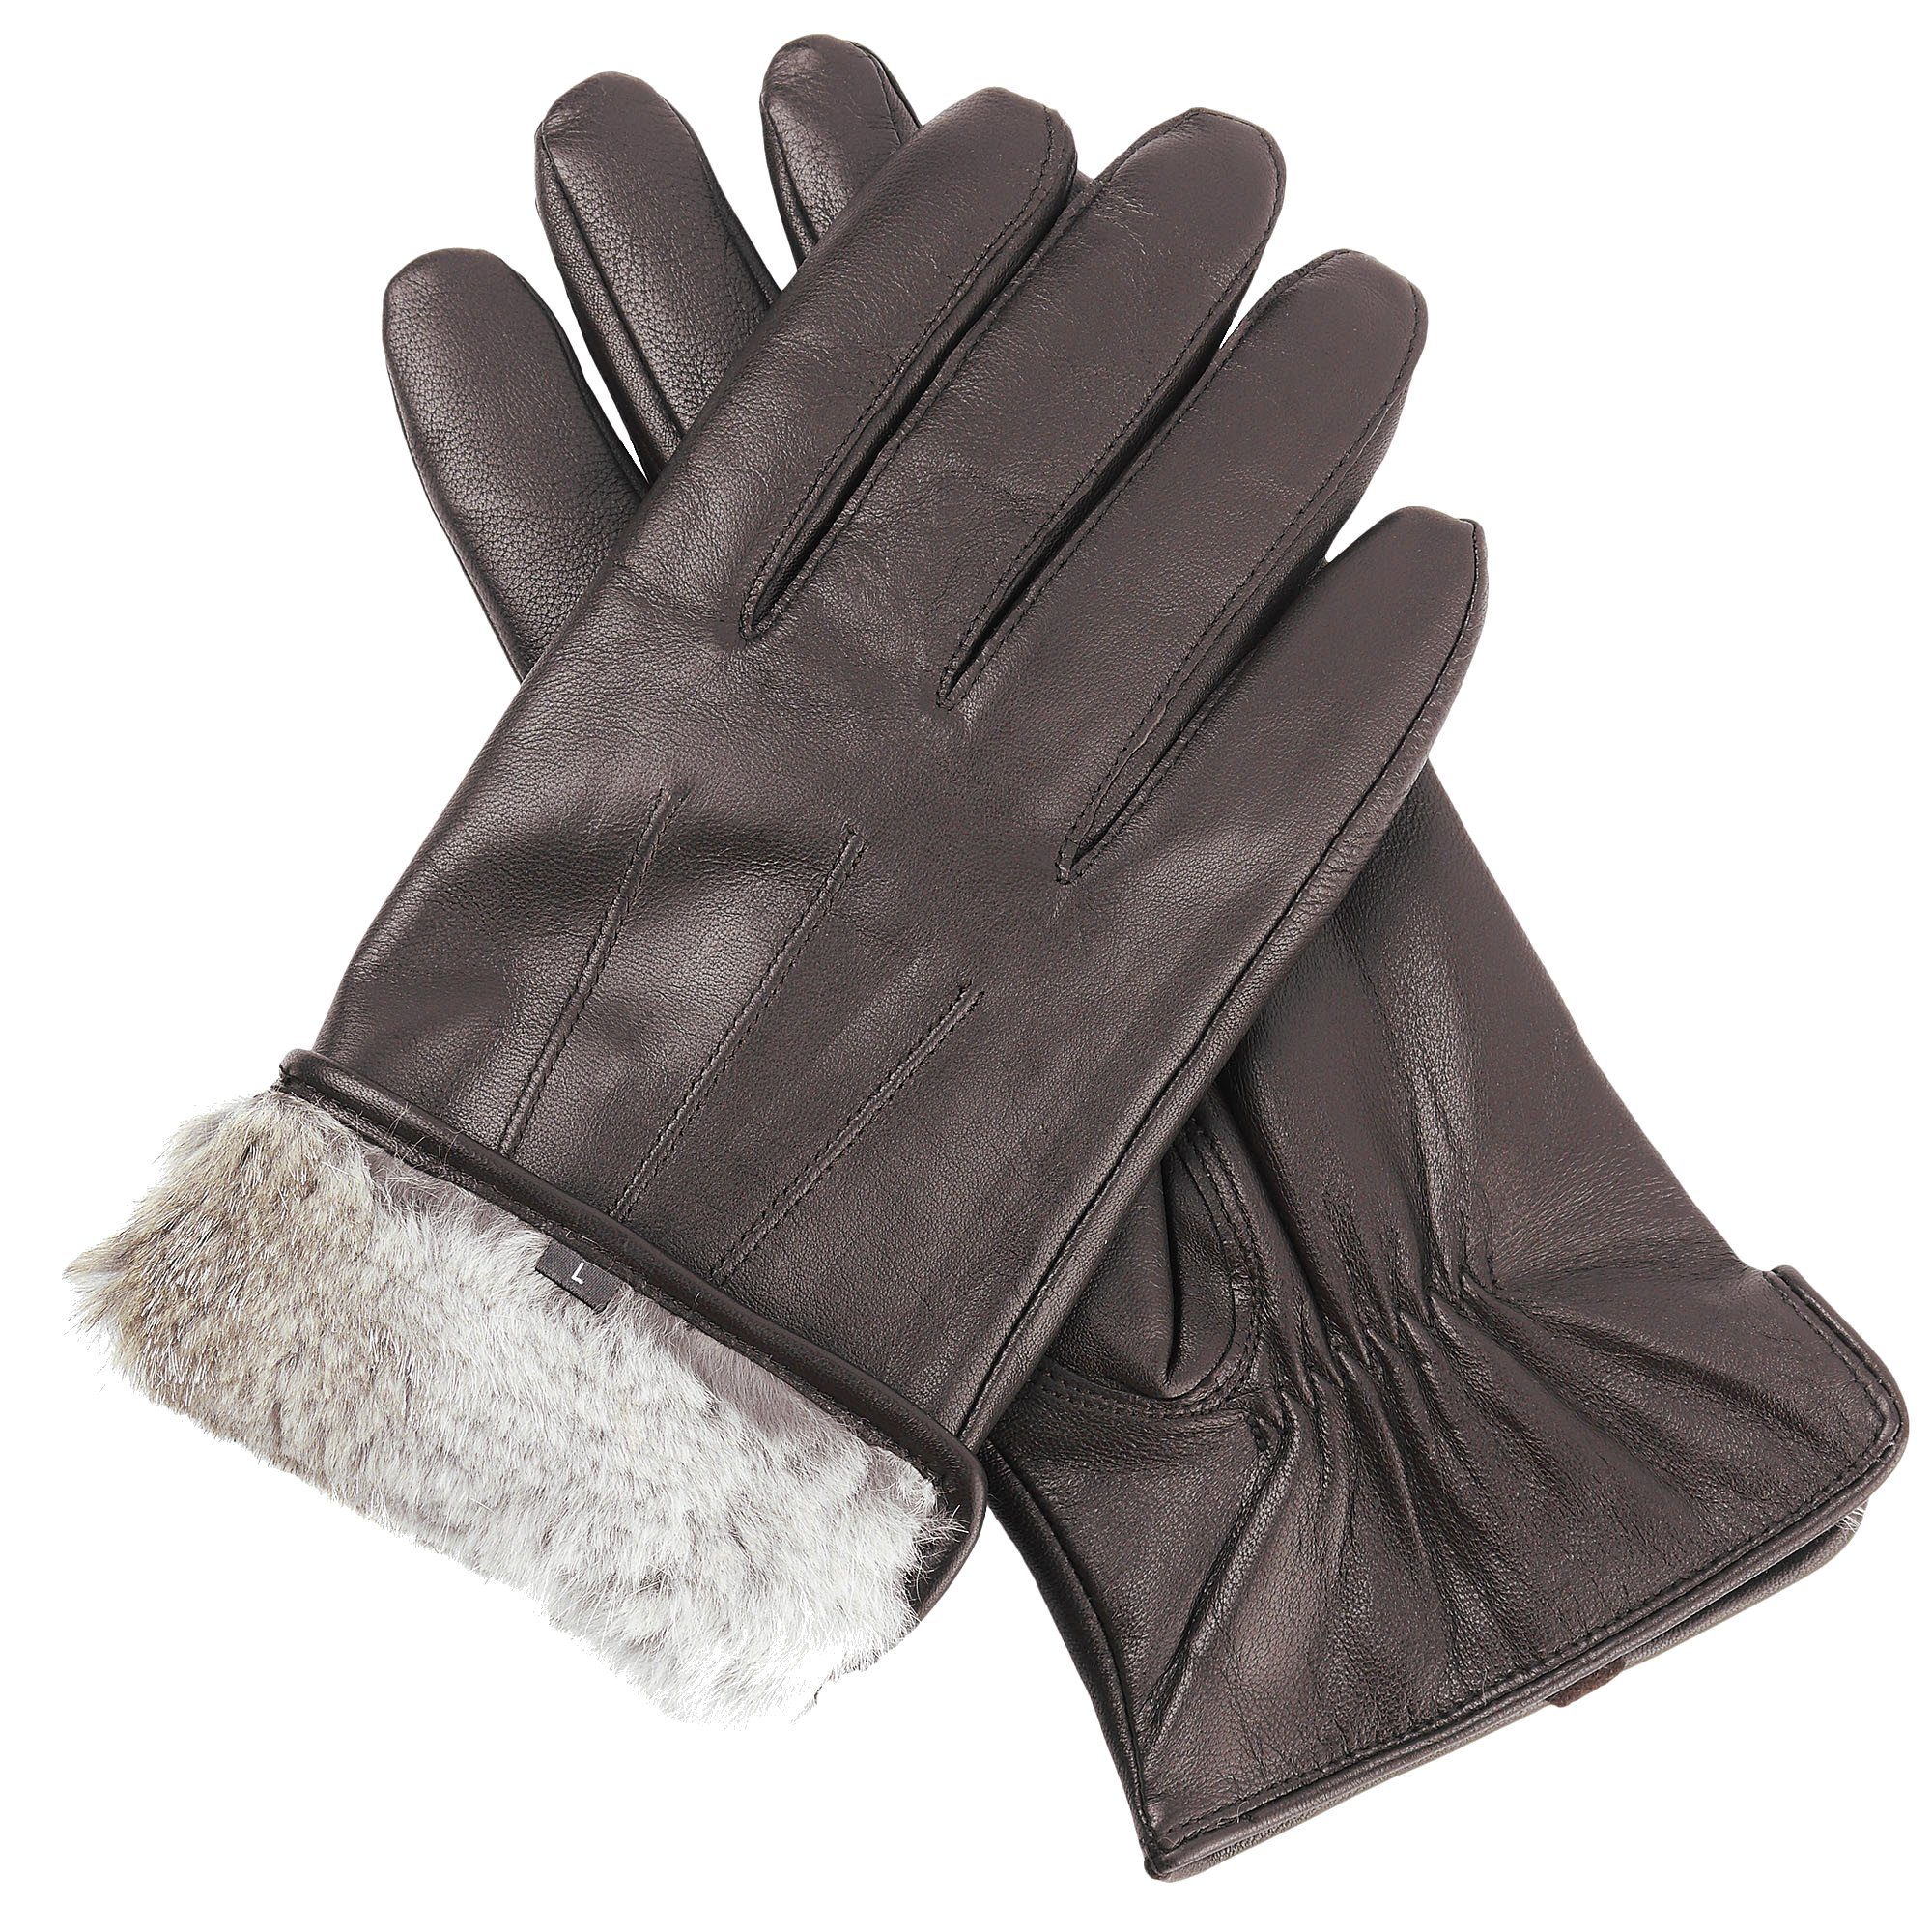 Candor and Class Men's Sheepskin Leather Gloves with Rabbit Fur Lining (Brown, Large)